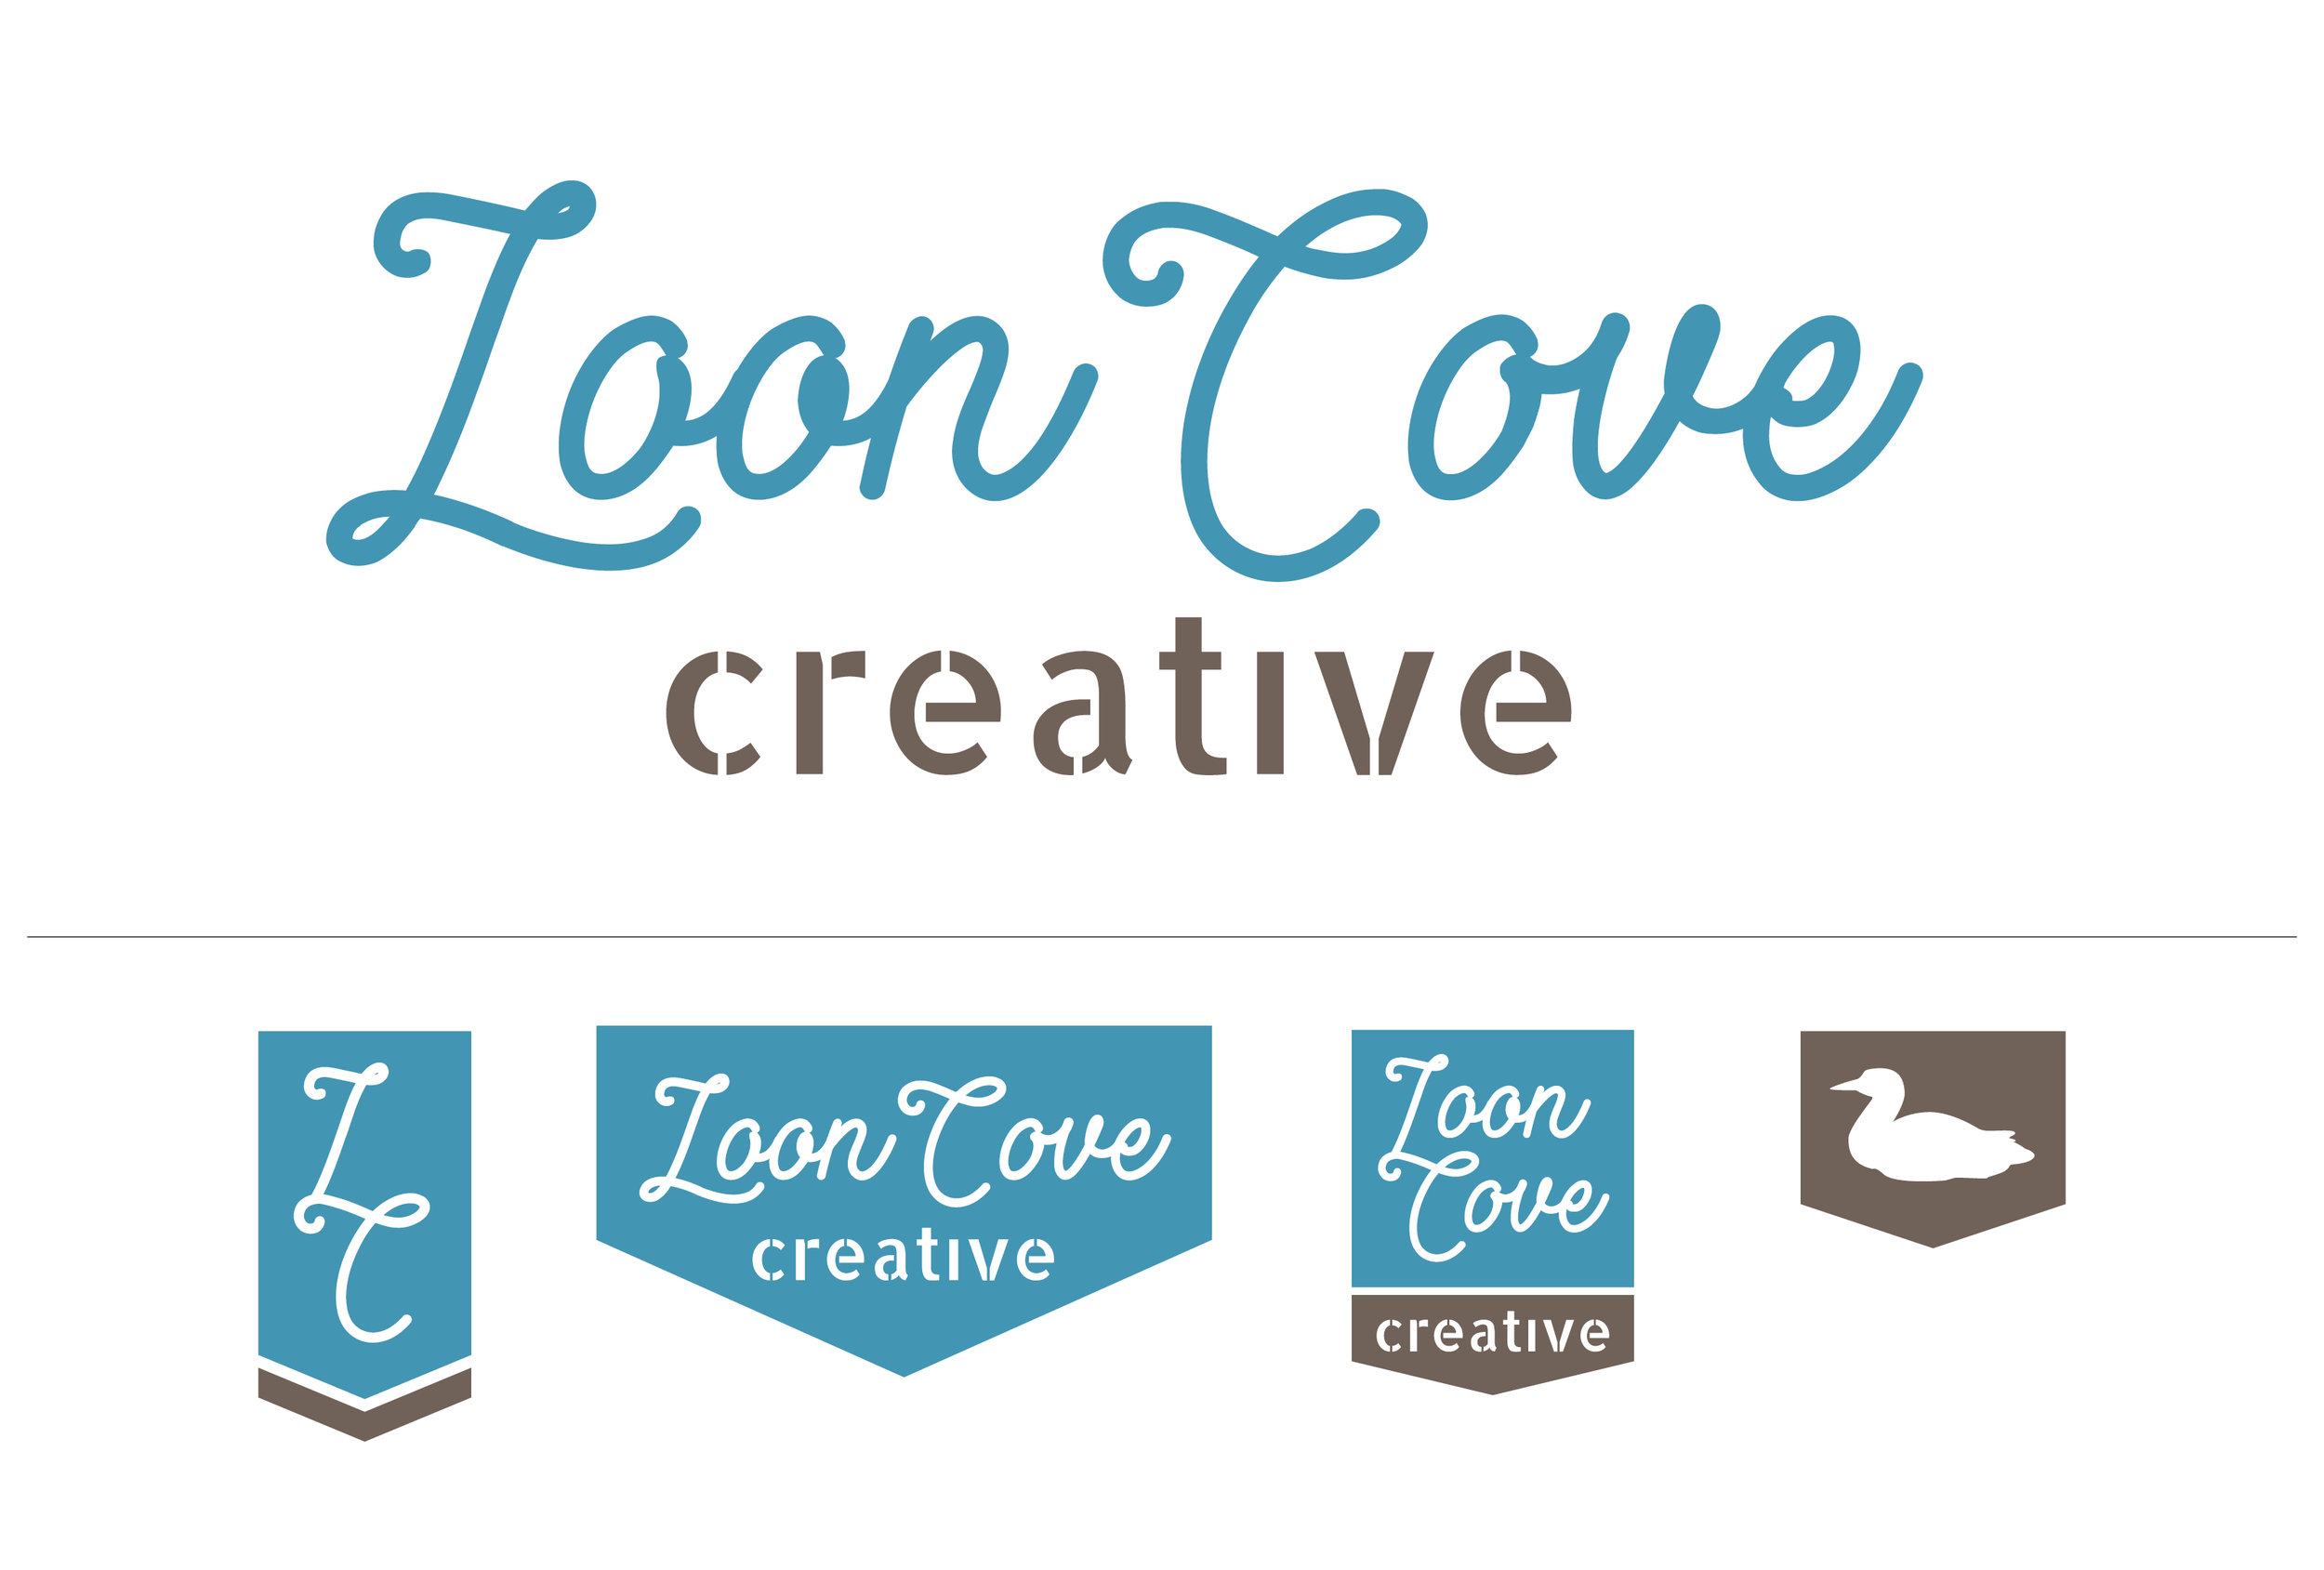 Loon Cove Creative